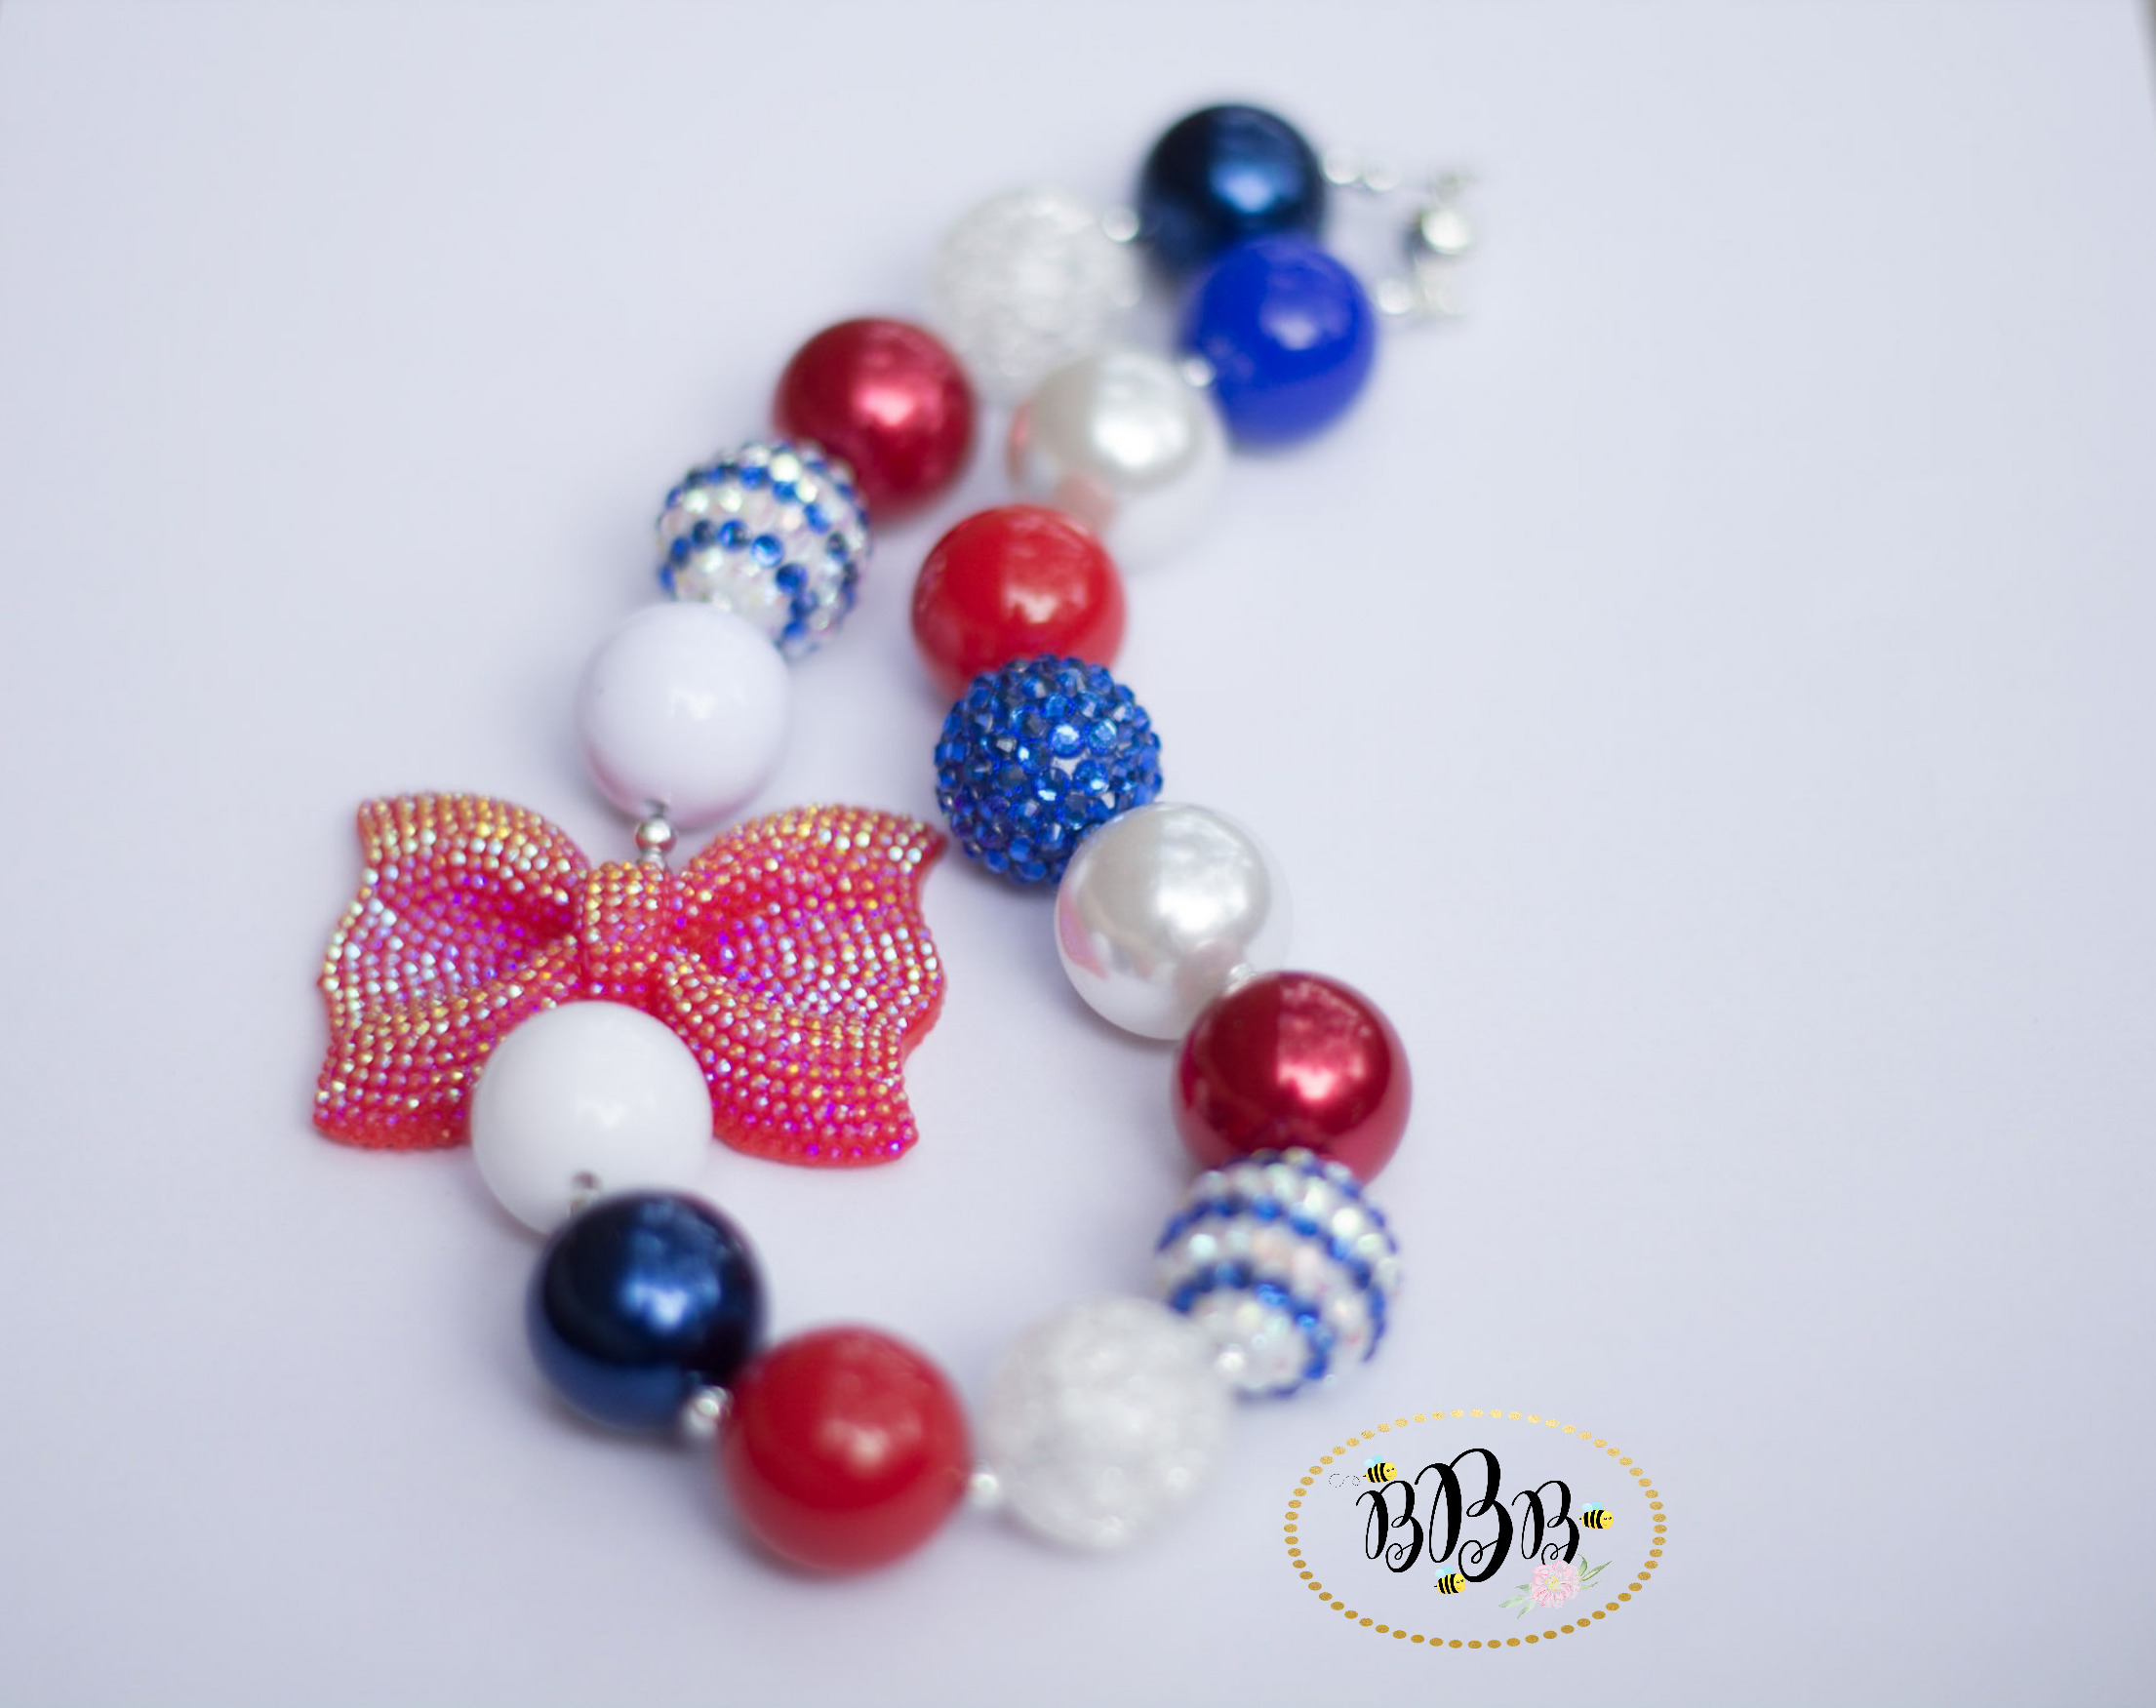 items 4th July creations - 3beesboutique | ello